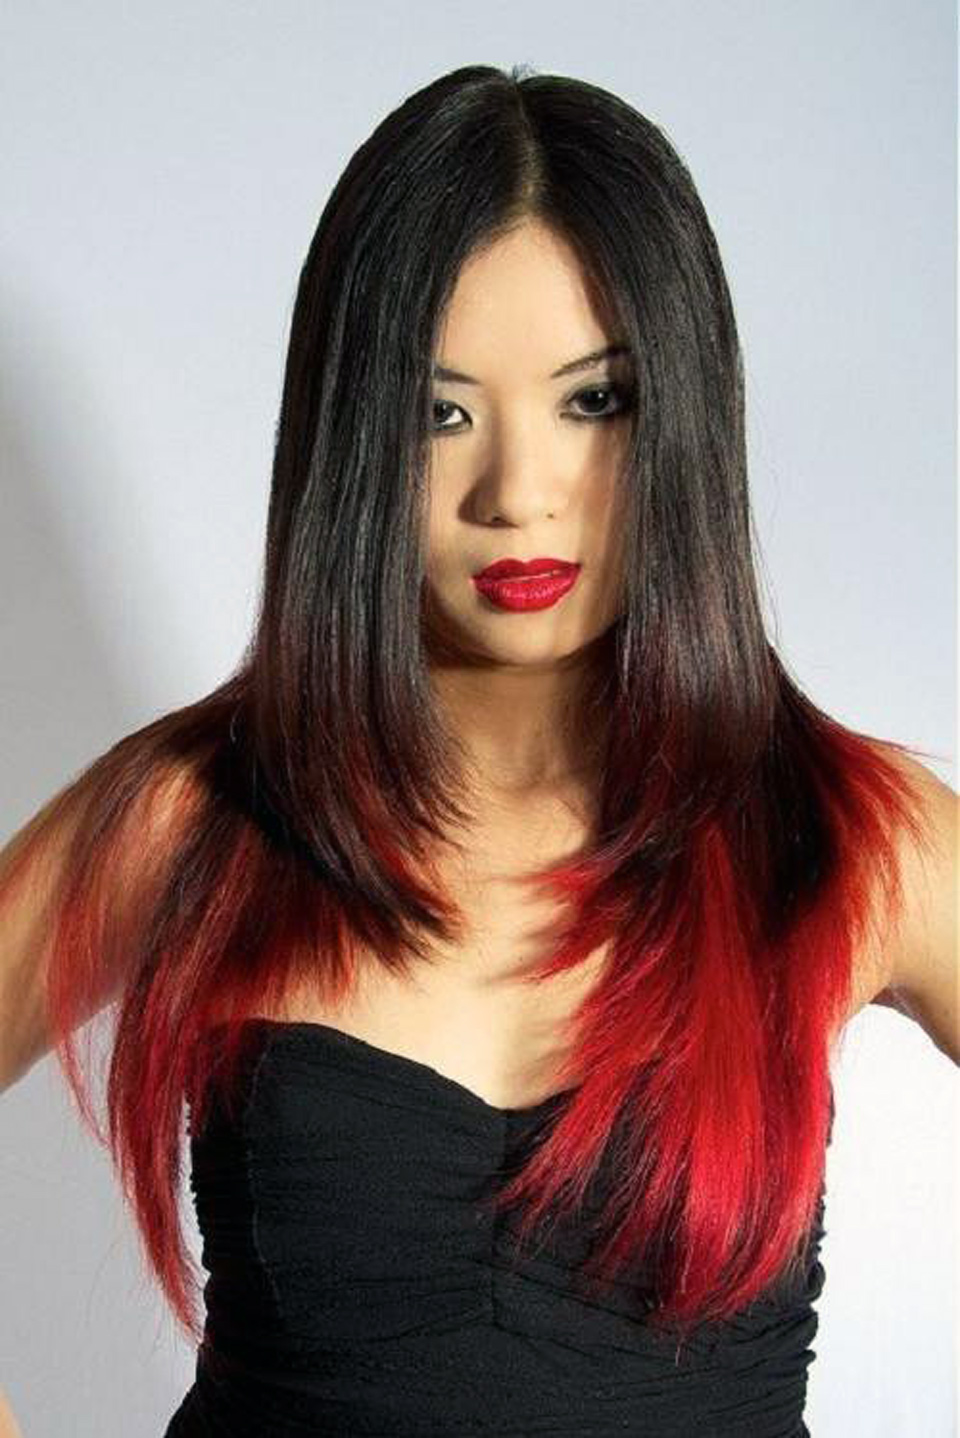 Long Black Hairstyles With Red Highlights for long face